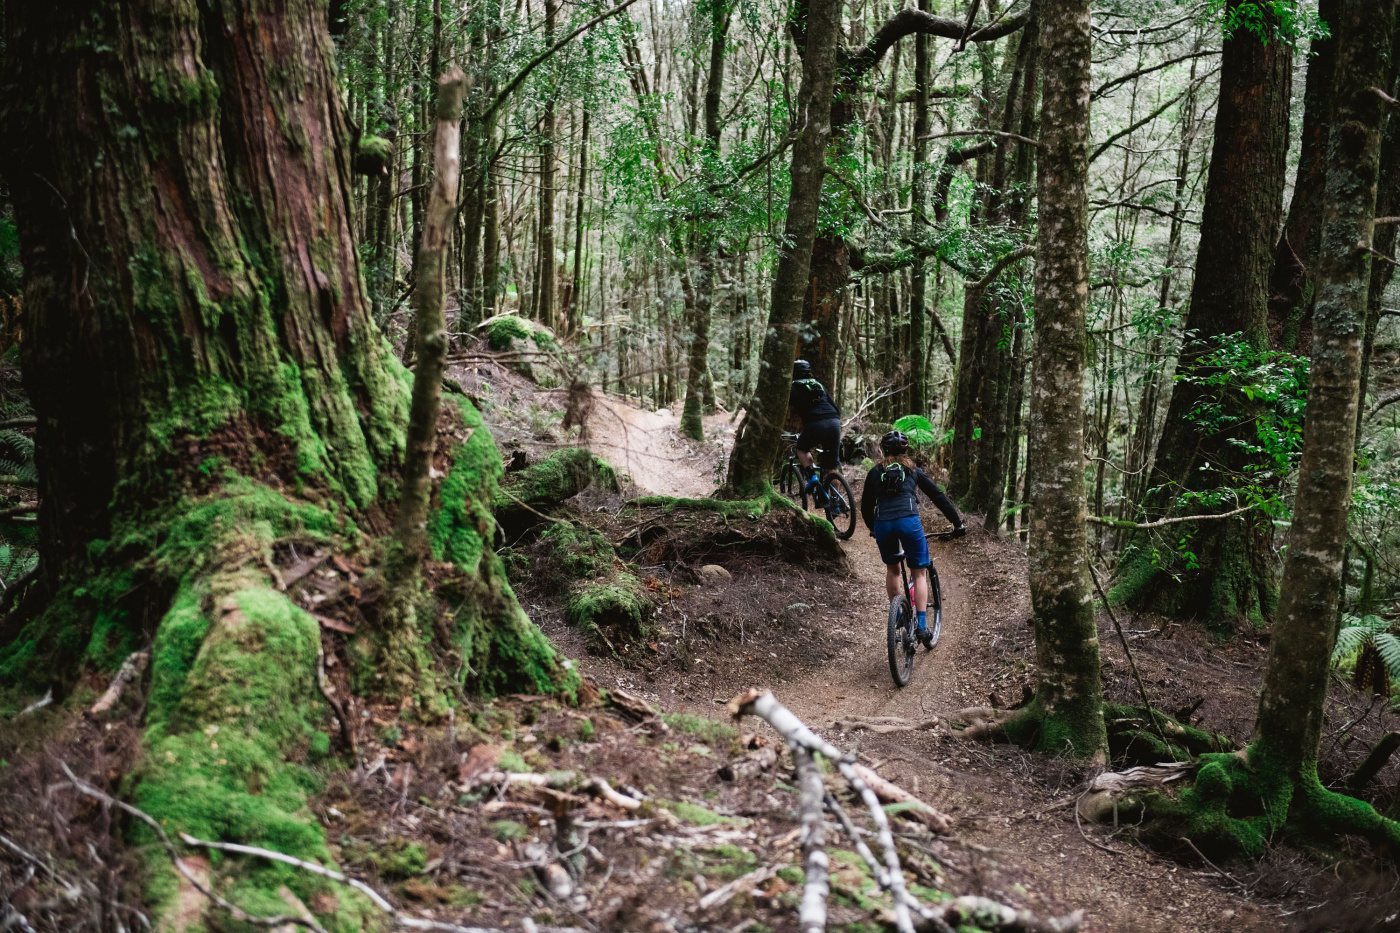 The goblin forests of the Blue Tier Trail